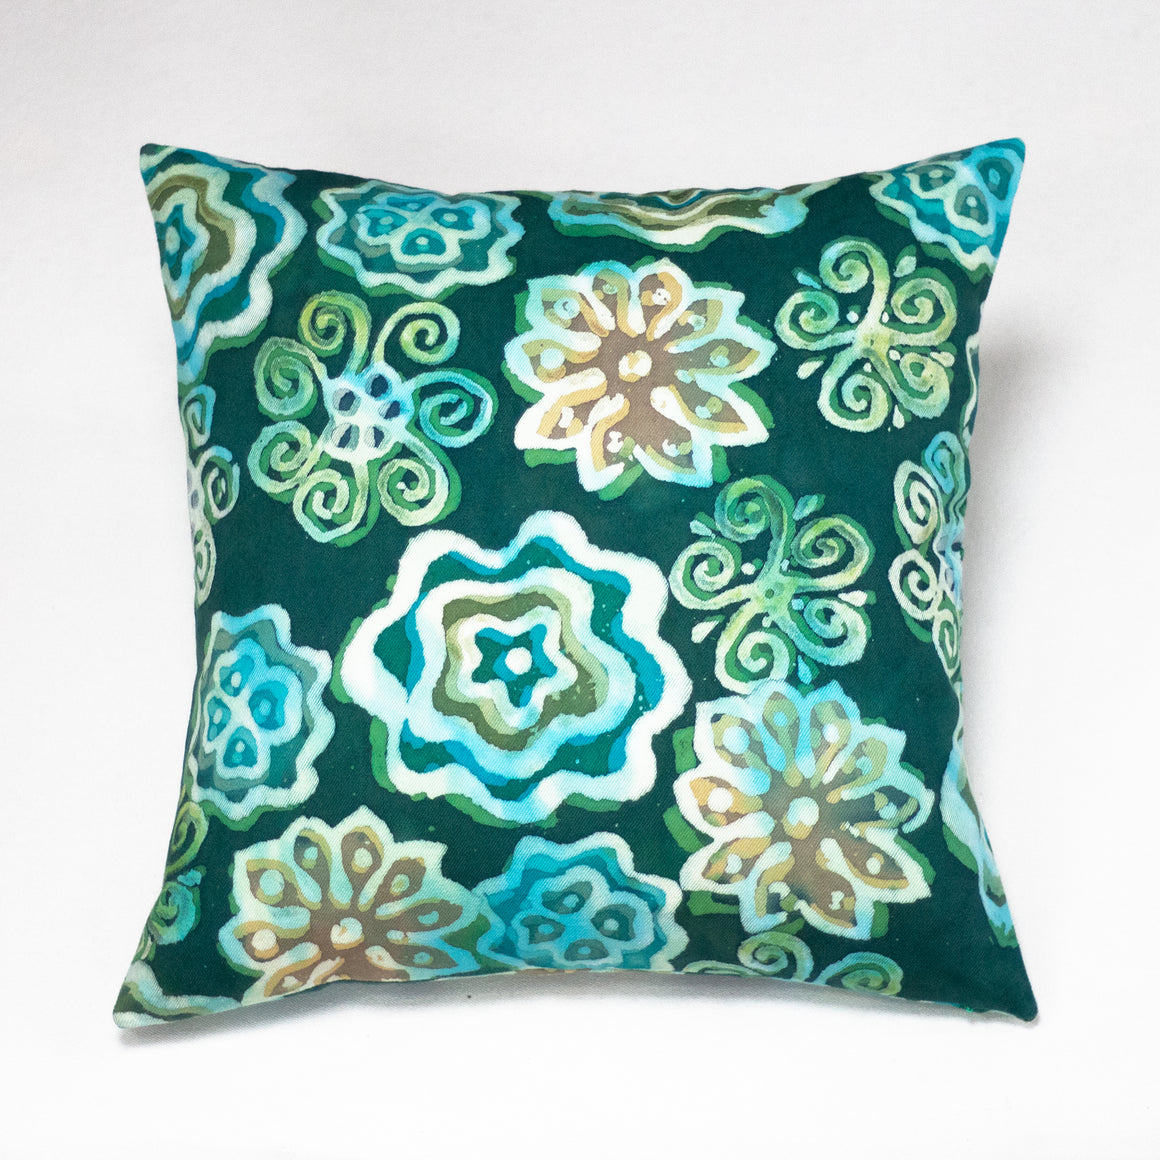 Accent Pillows - Hand Painted - Seaside Collection